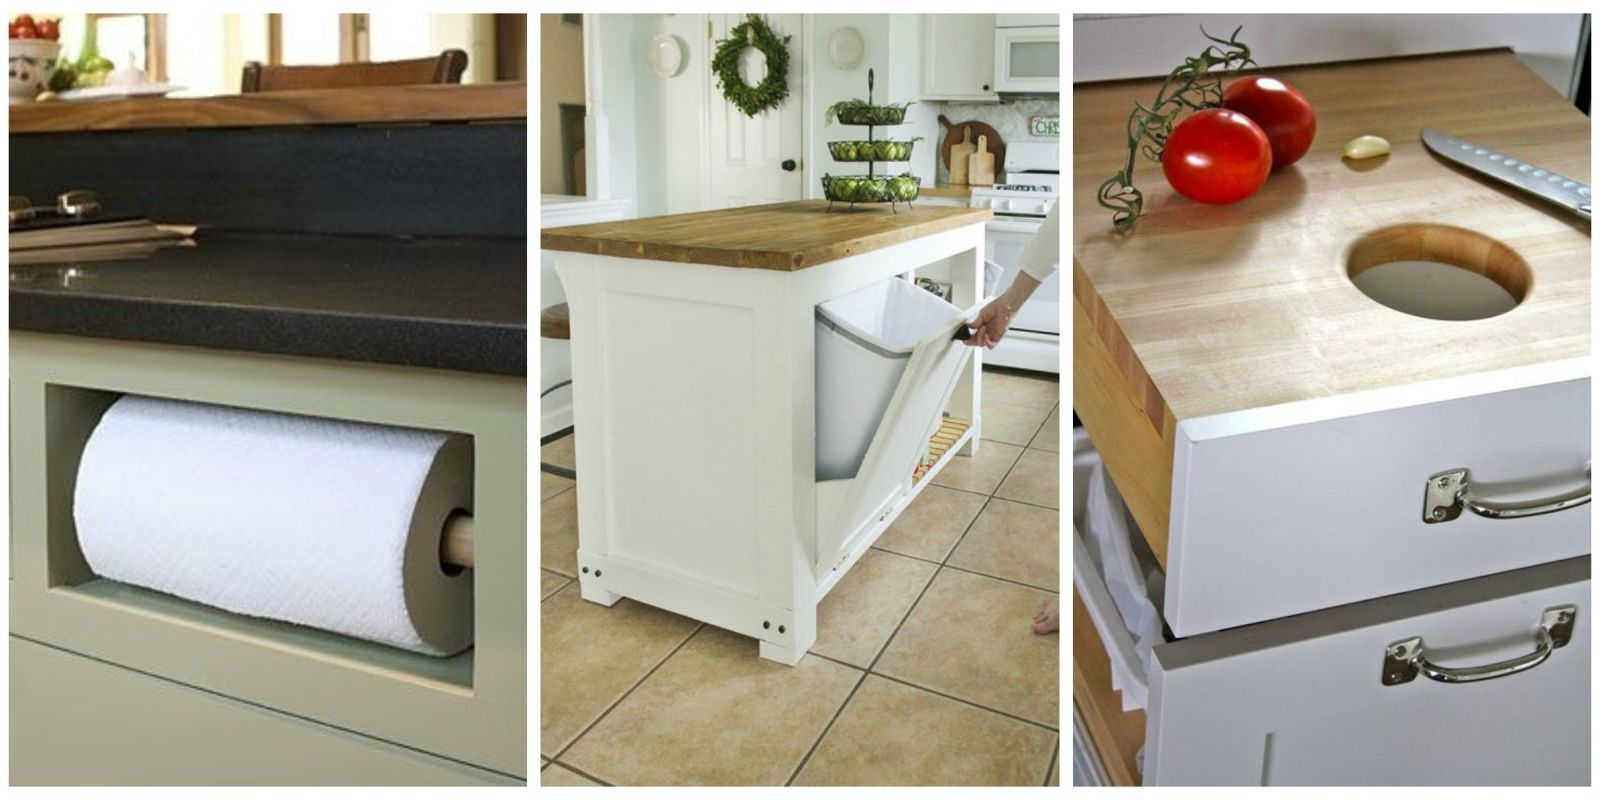 Kitchen storage solutions ideas for kitchen storage for Hidden kitchen storage ideas